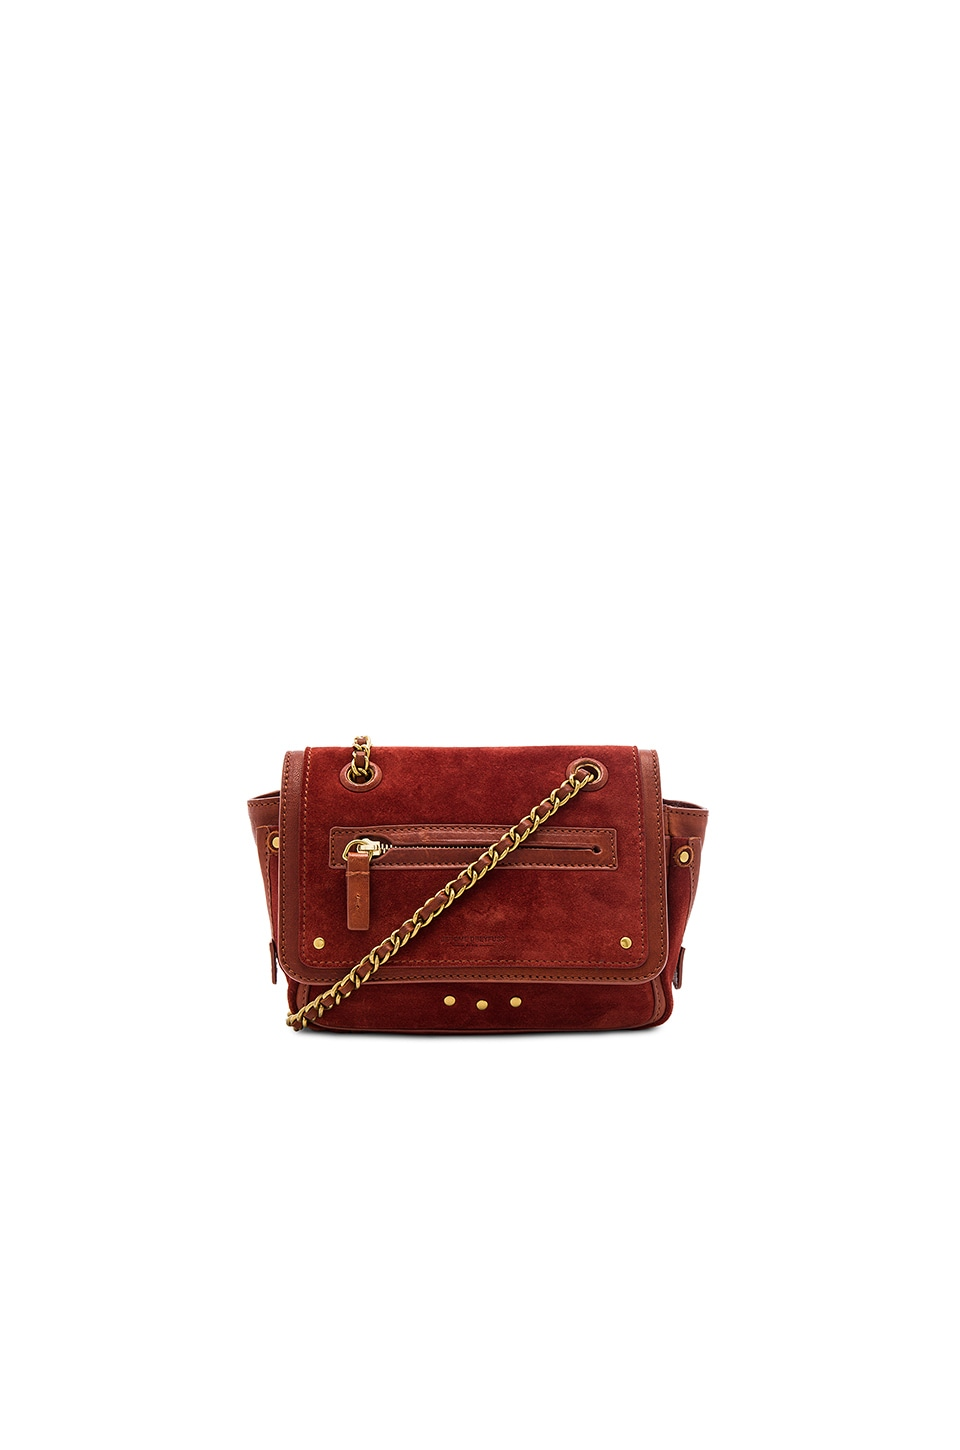 Jerome Dreyfuss Benji Crossbody in Red